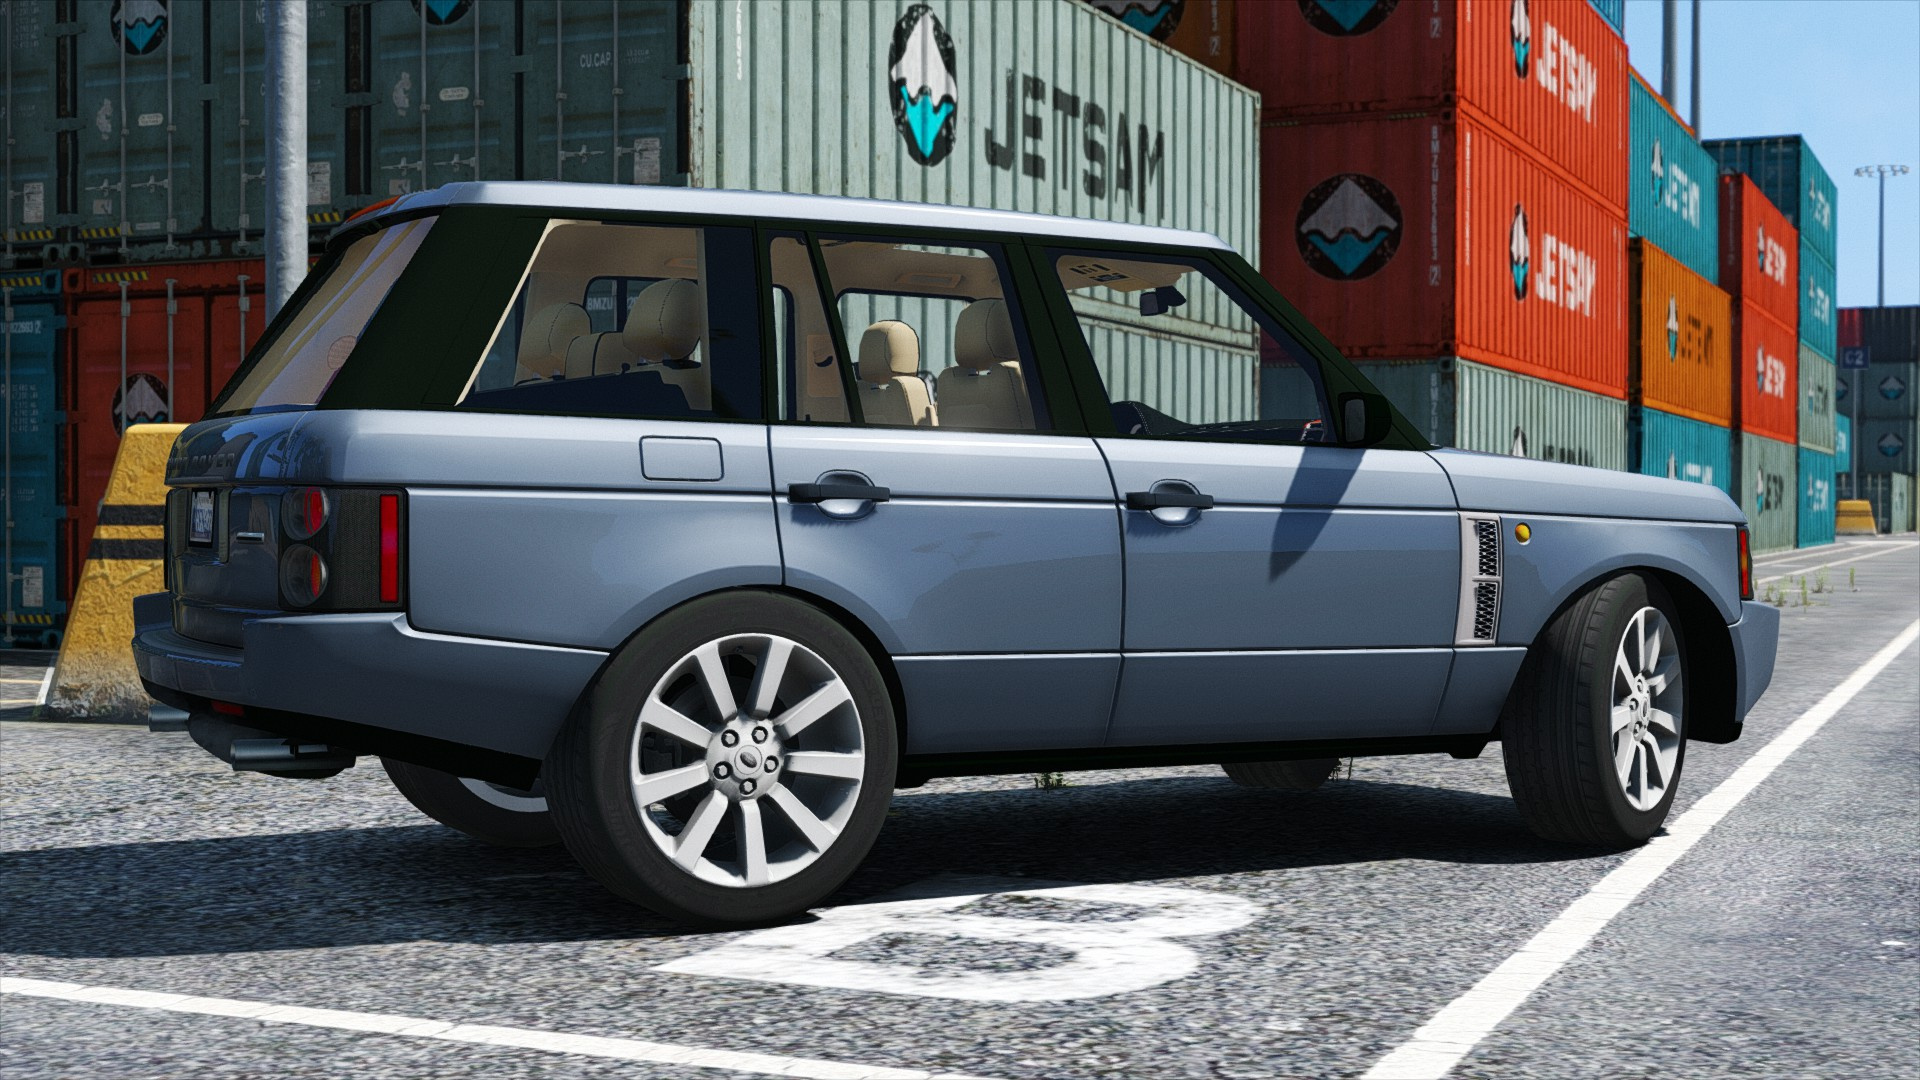 Range Rover Supercharged GTA5 Mods